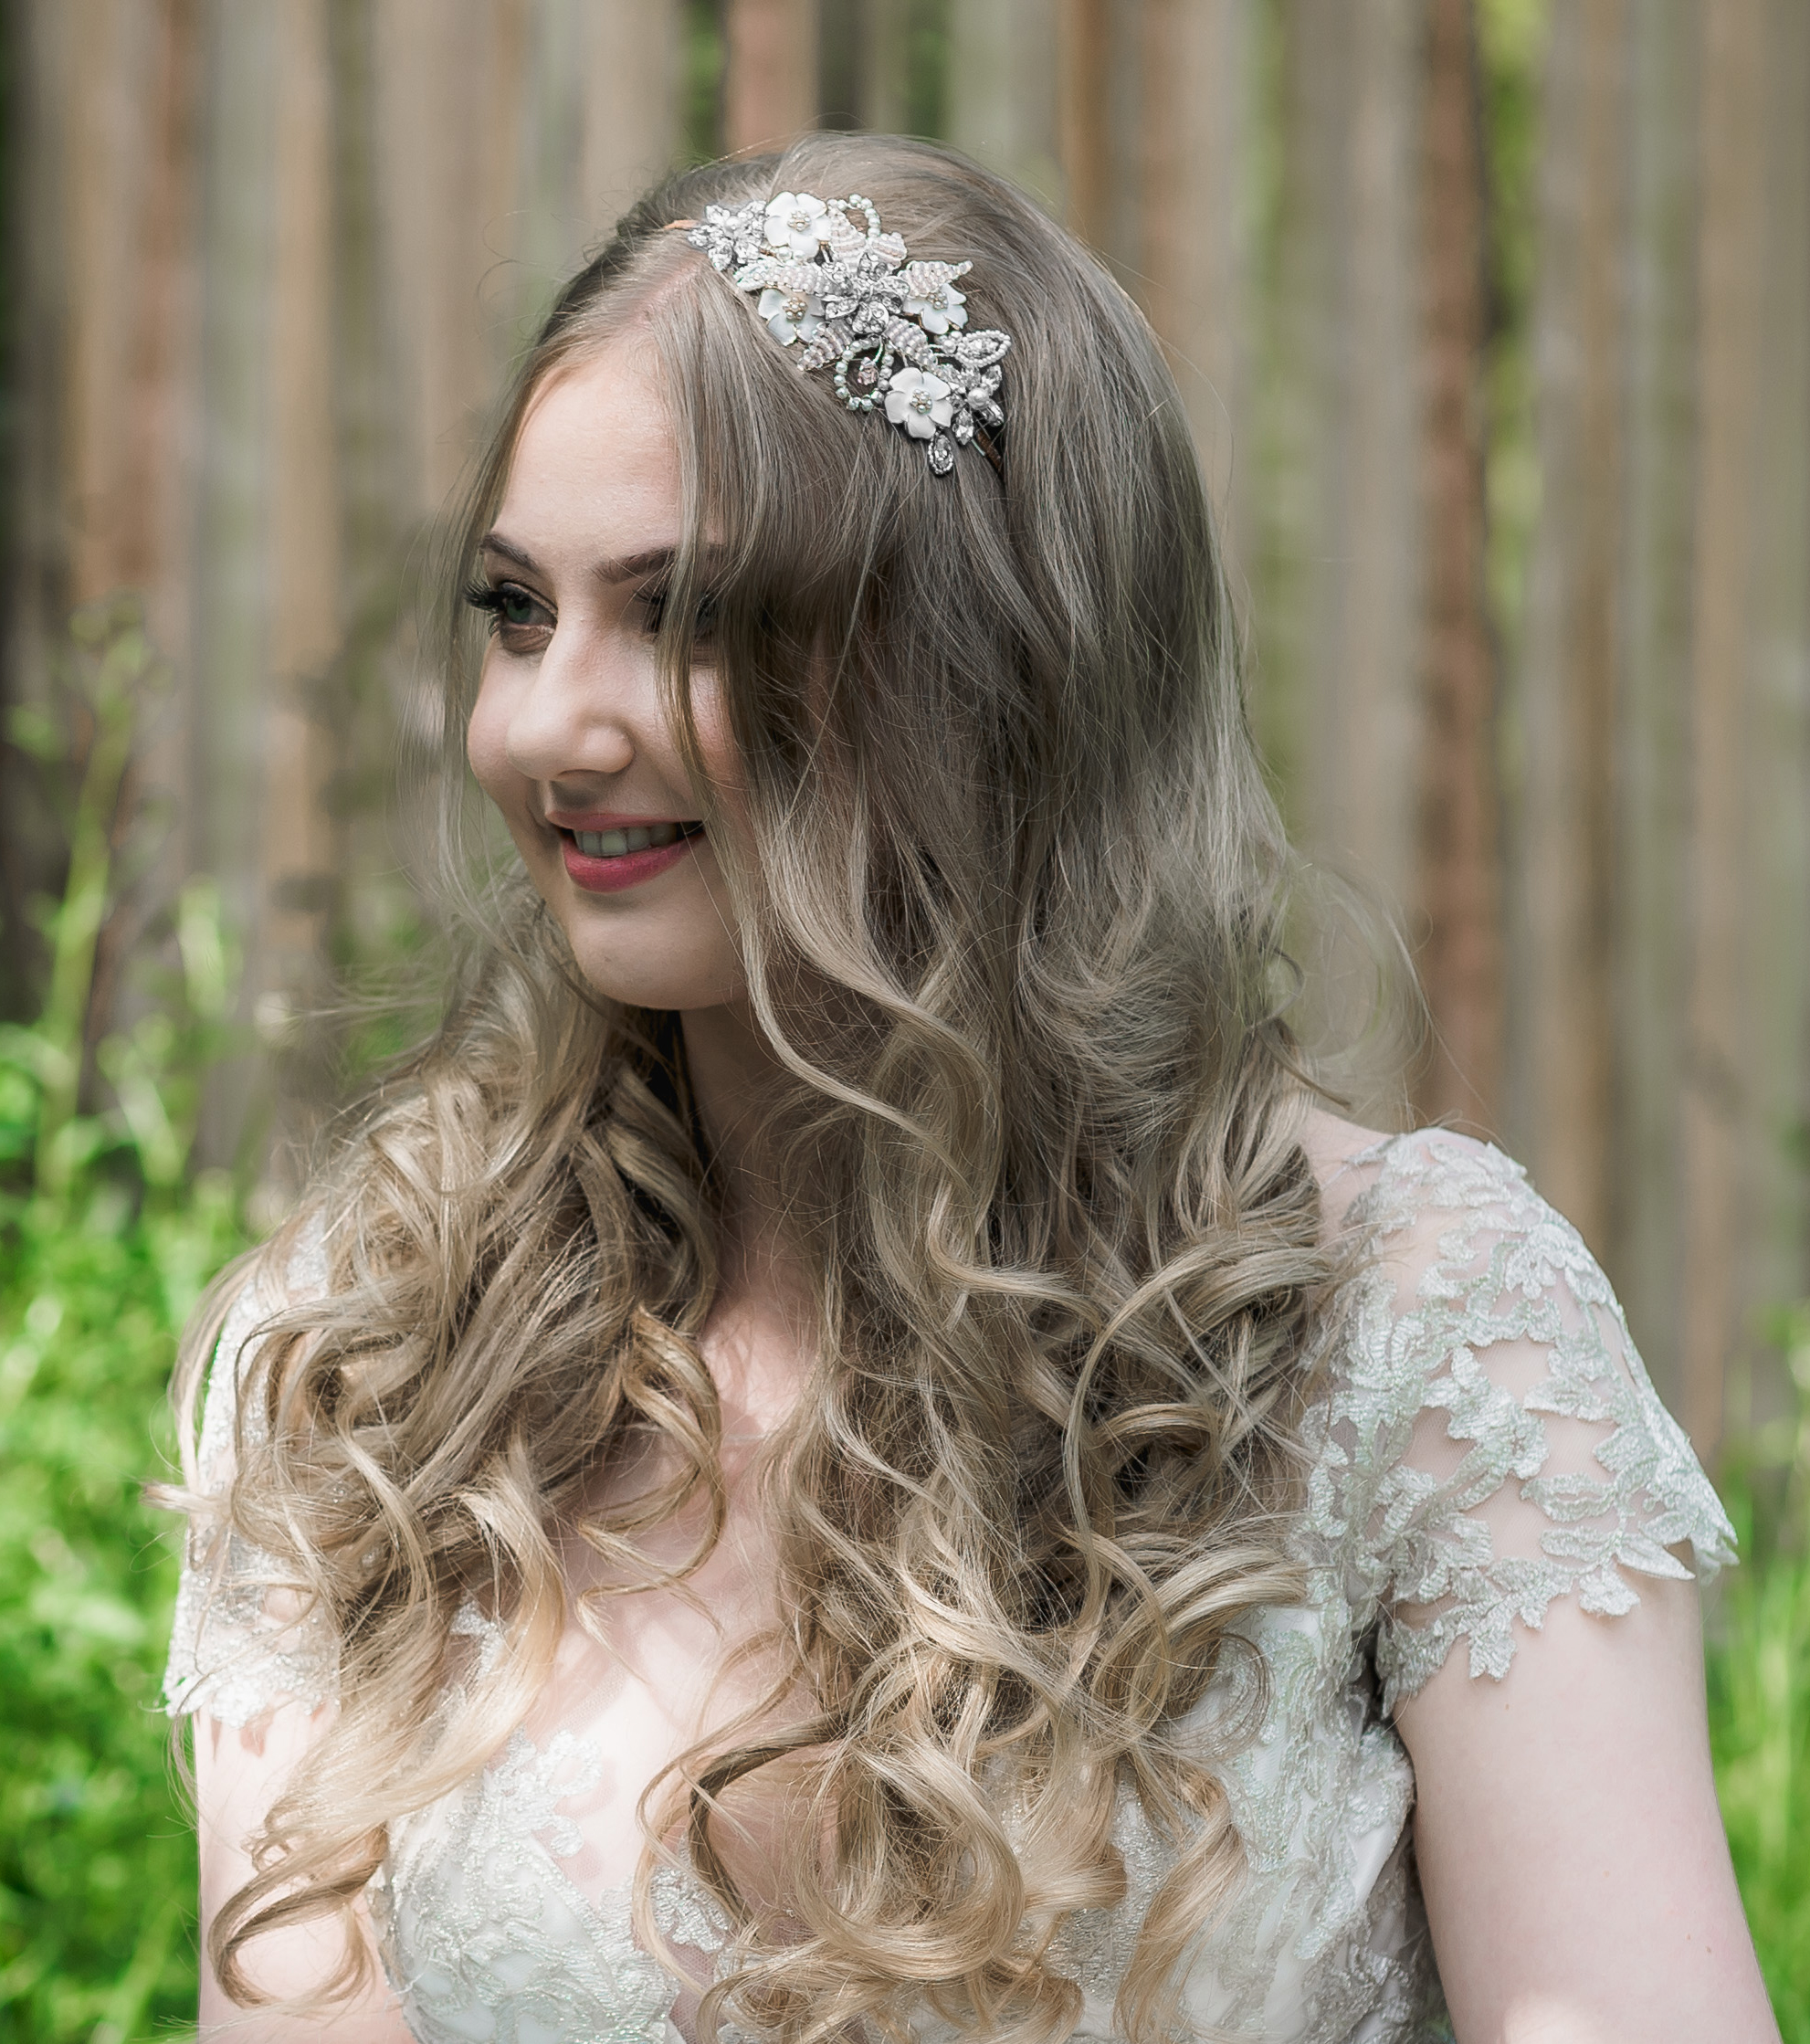 Bridal headpiece with ivory enamel flowers and blush beaded flower on a bride with long hair